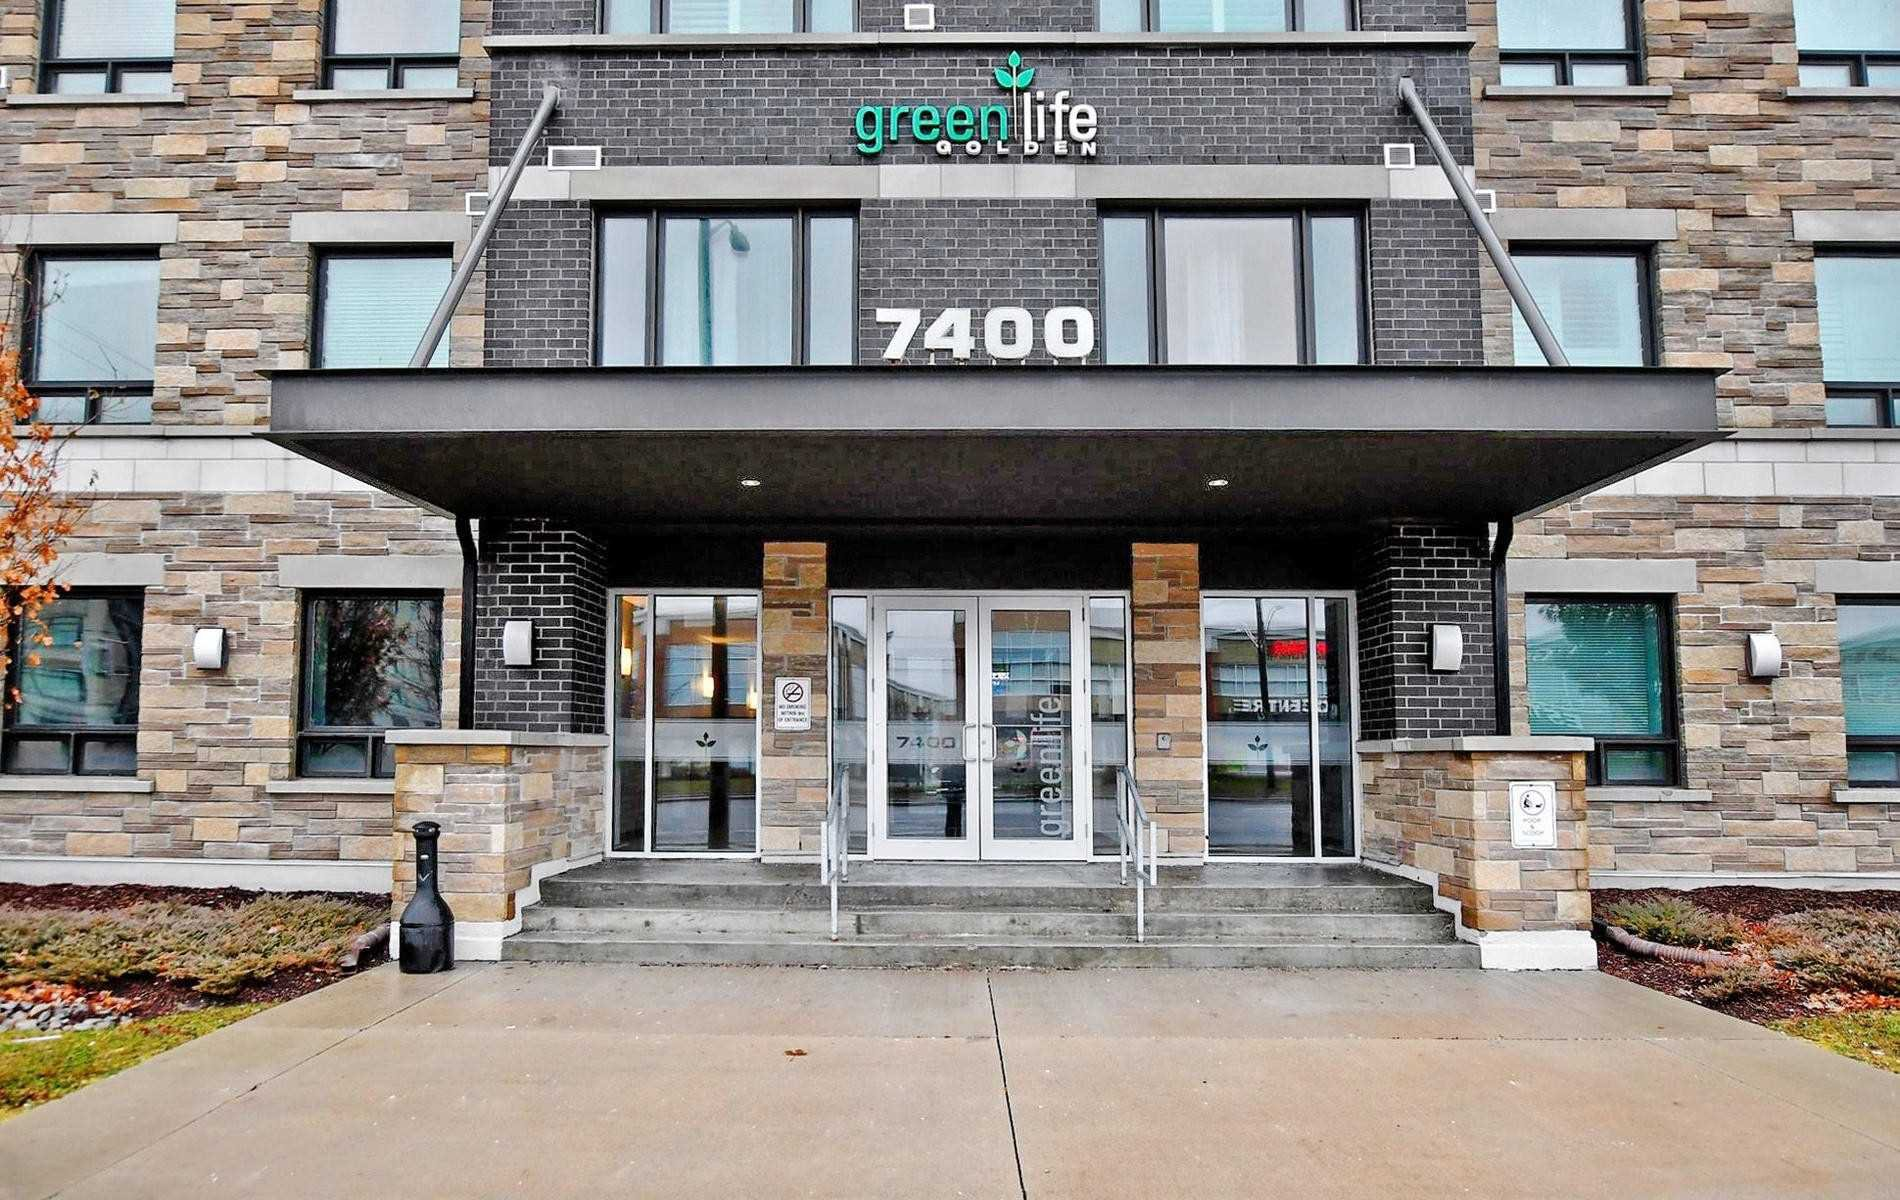 Main Photo: 208 7400 Markham Road in Markham: Middlefield Condo for sale : MLS®# N4672058